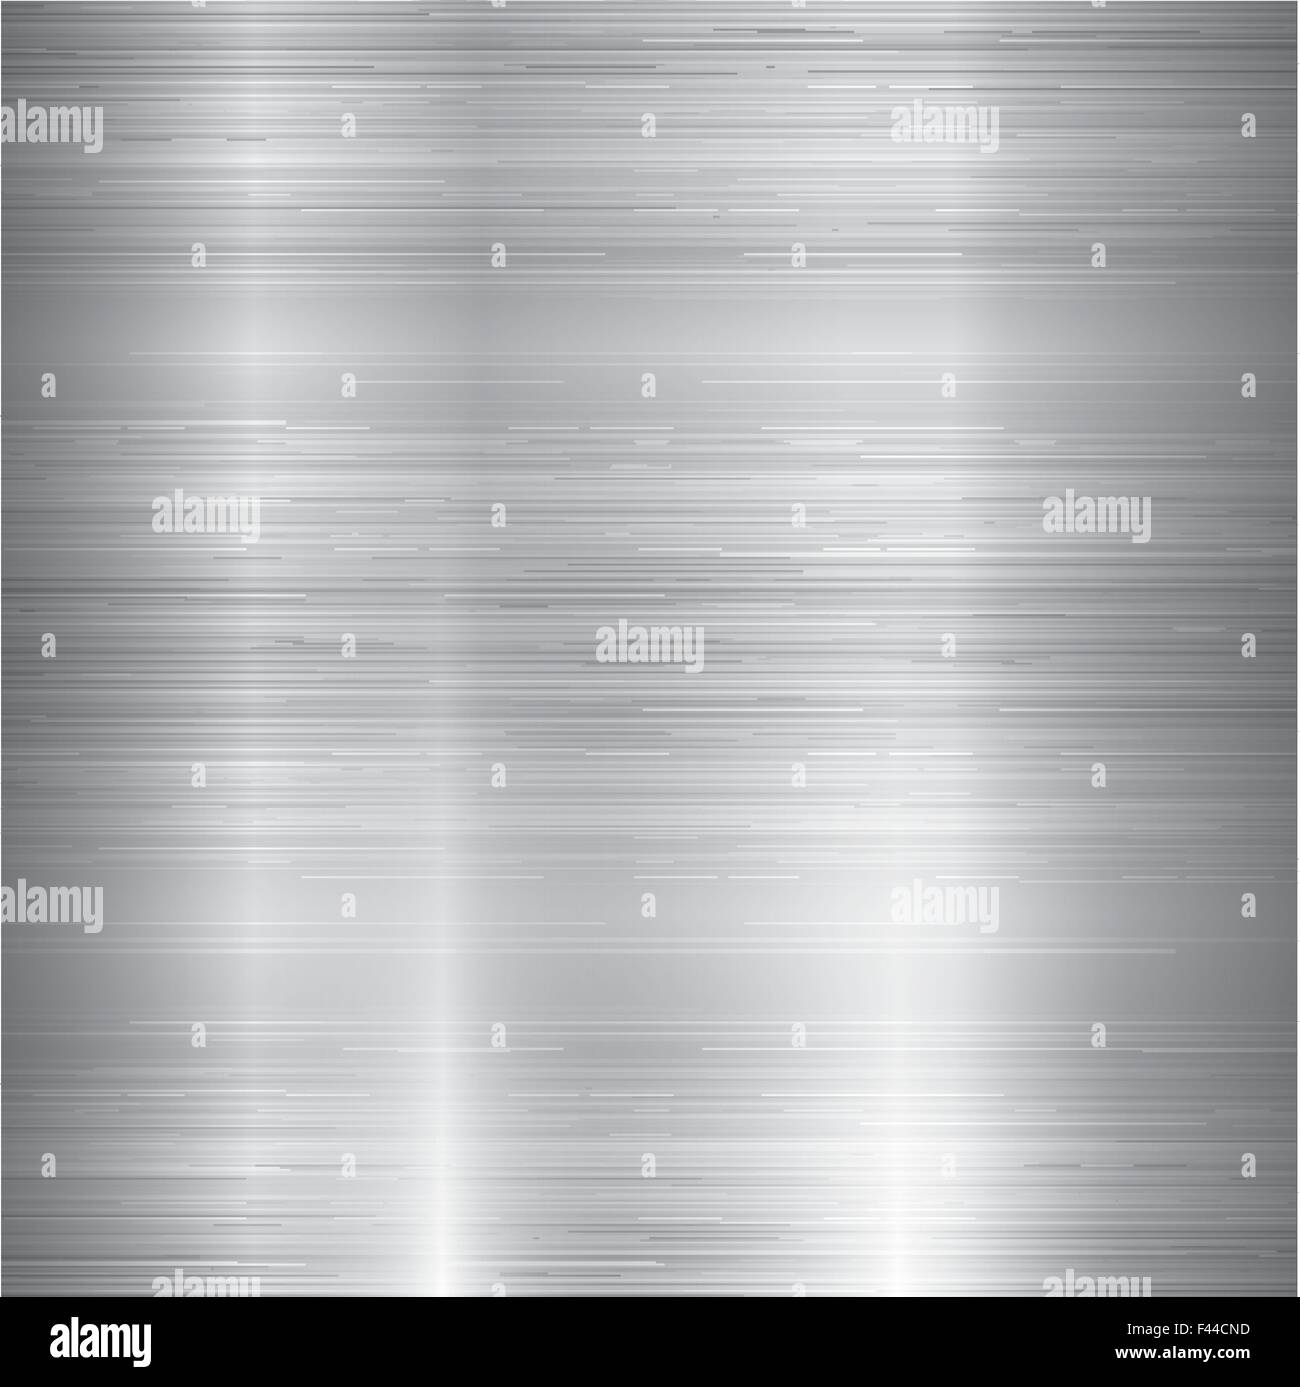 Silver metal background - Stock Vector